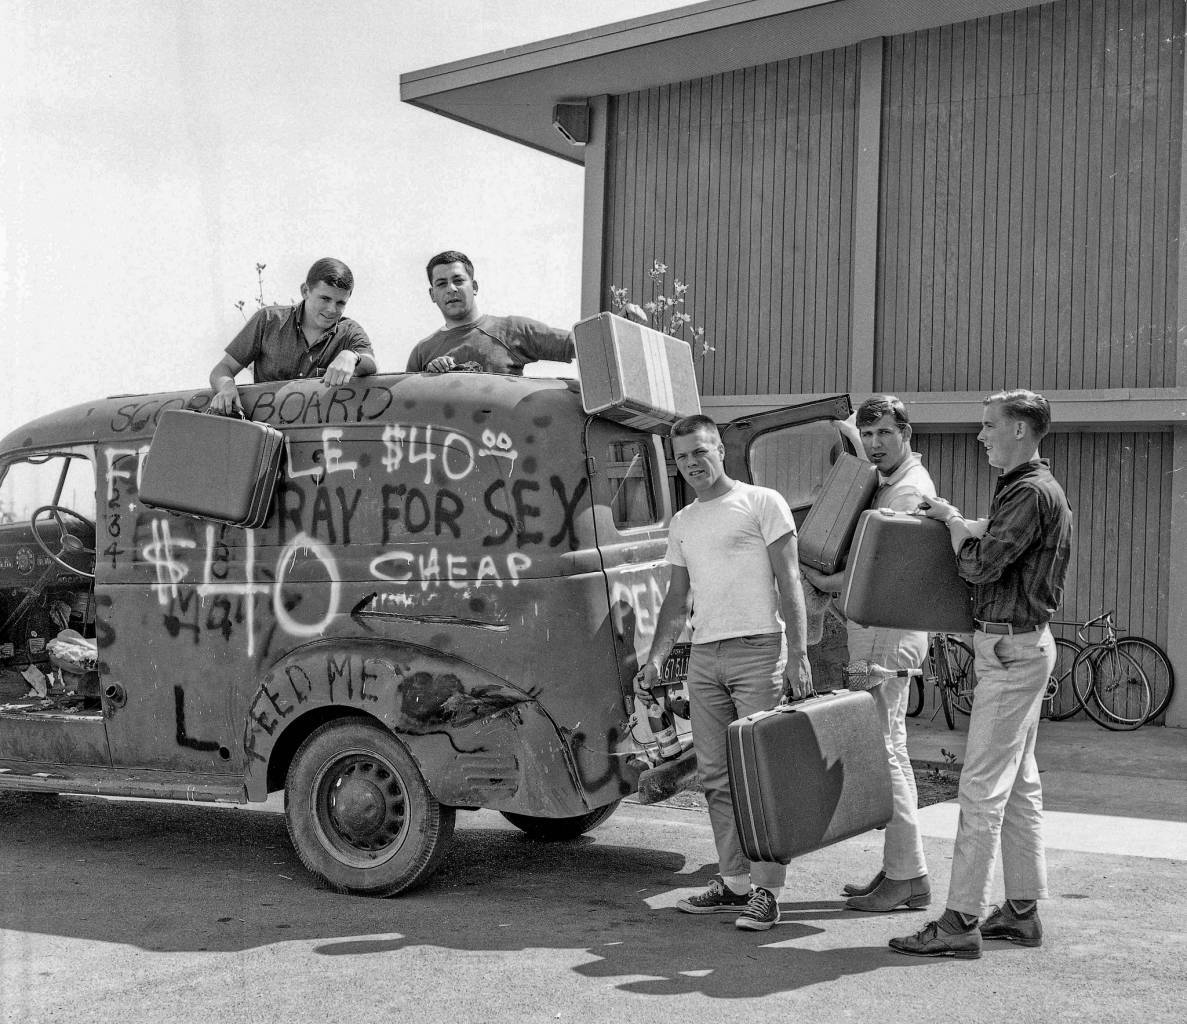 Shark Mobile Road Trip 1966 Not really. The guys were just joking in this staged photo back in 1966. Students at Fresno State College in one of the dormitories just west of the campus. This old Dodge panel truck was just for limited local travel. From pictures I took in my college years in Fresno, California.